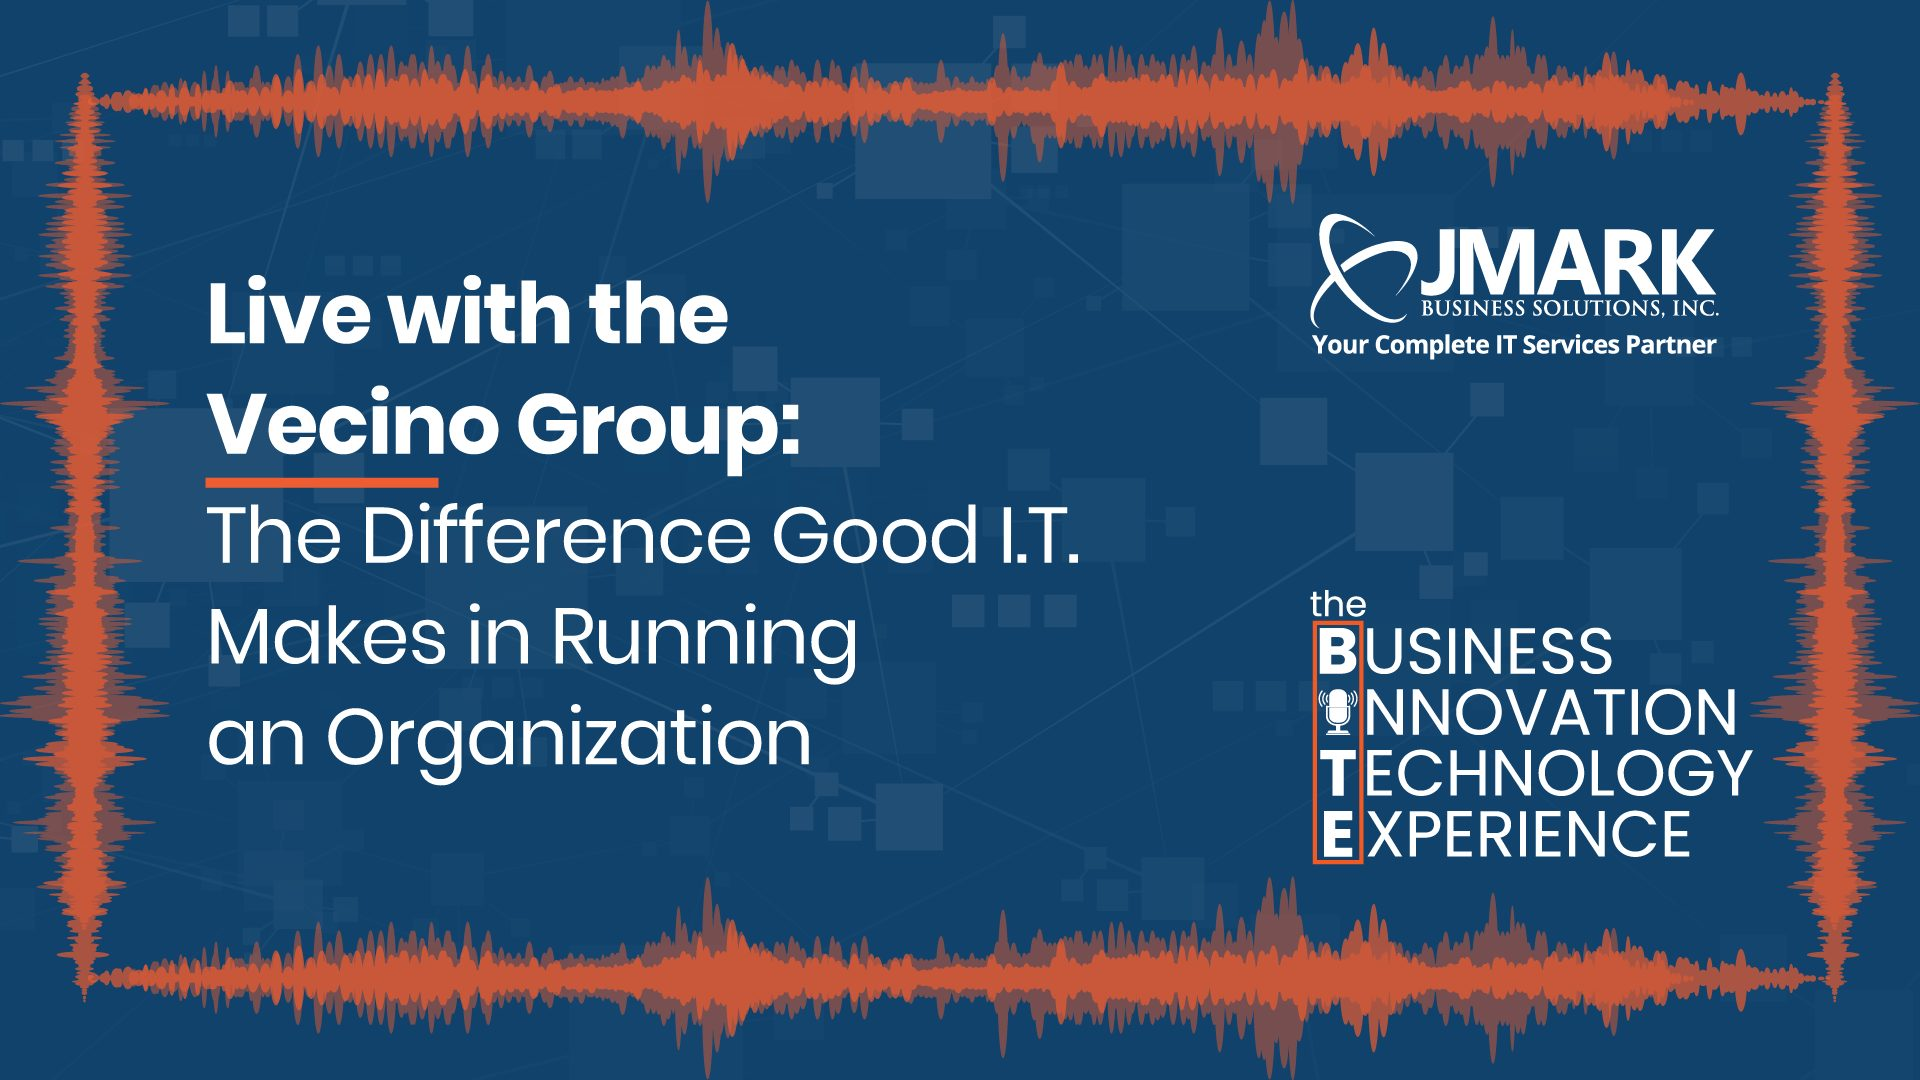 Live with the Vecino Group: The Difference Good I.T. Makes in Running an Organization